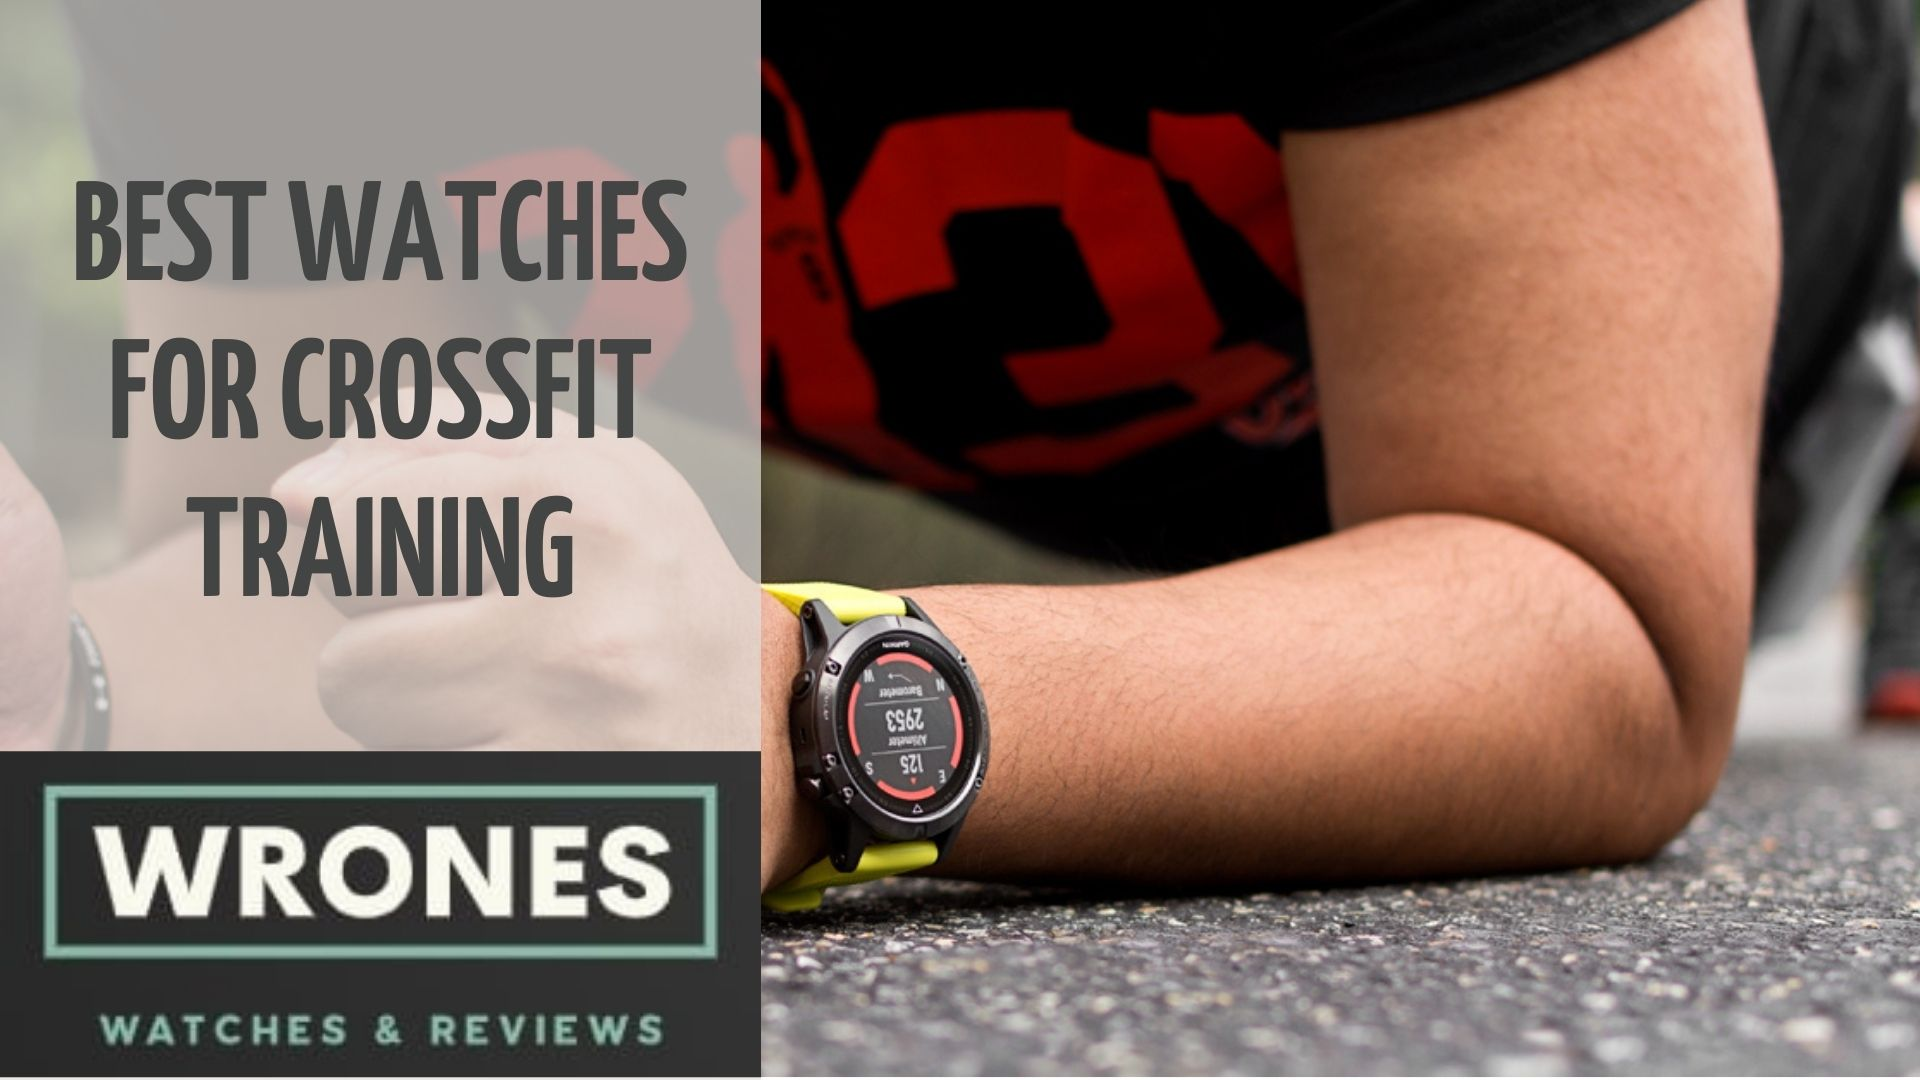 Best Watches For Crossfit Training wrones